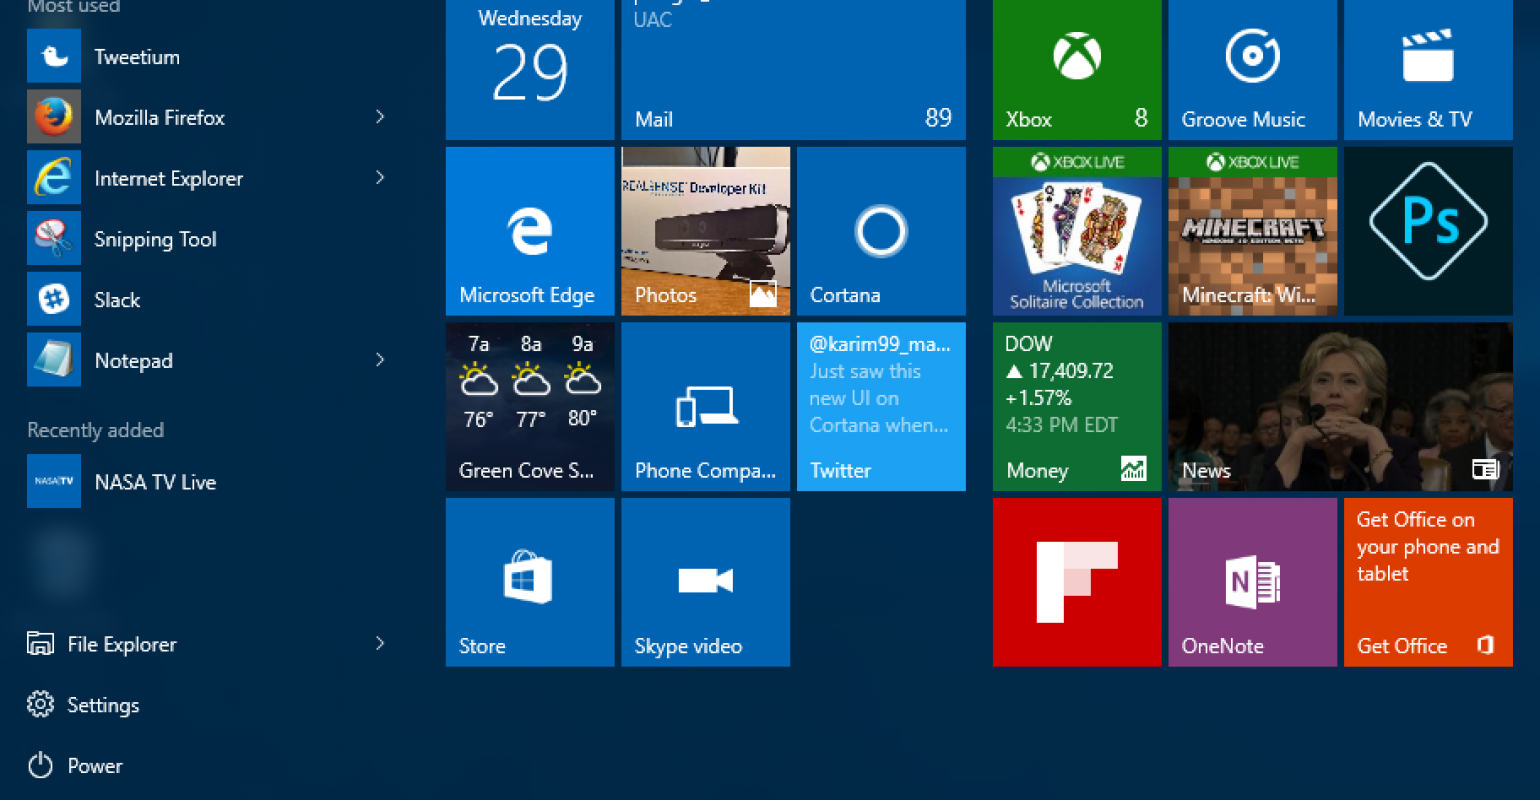 Windows 10 Customizing The Start Menu For Quick Access To Various System Folders It Pro